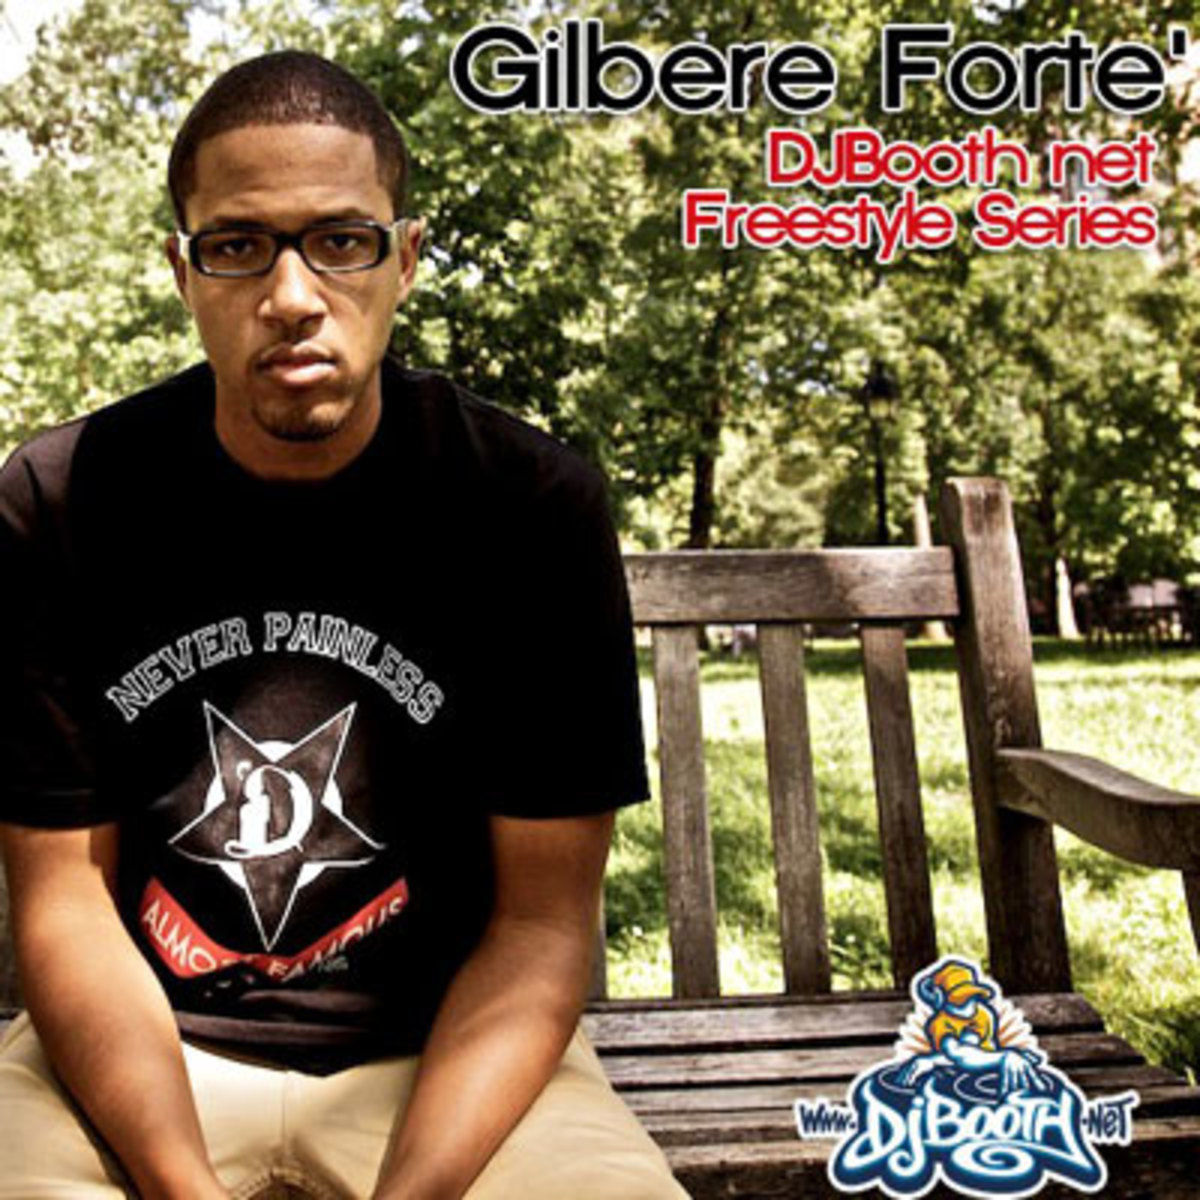 gilbereforte-freestyle.jpg